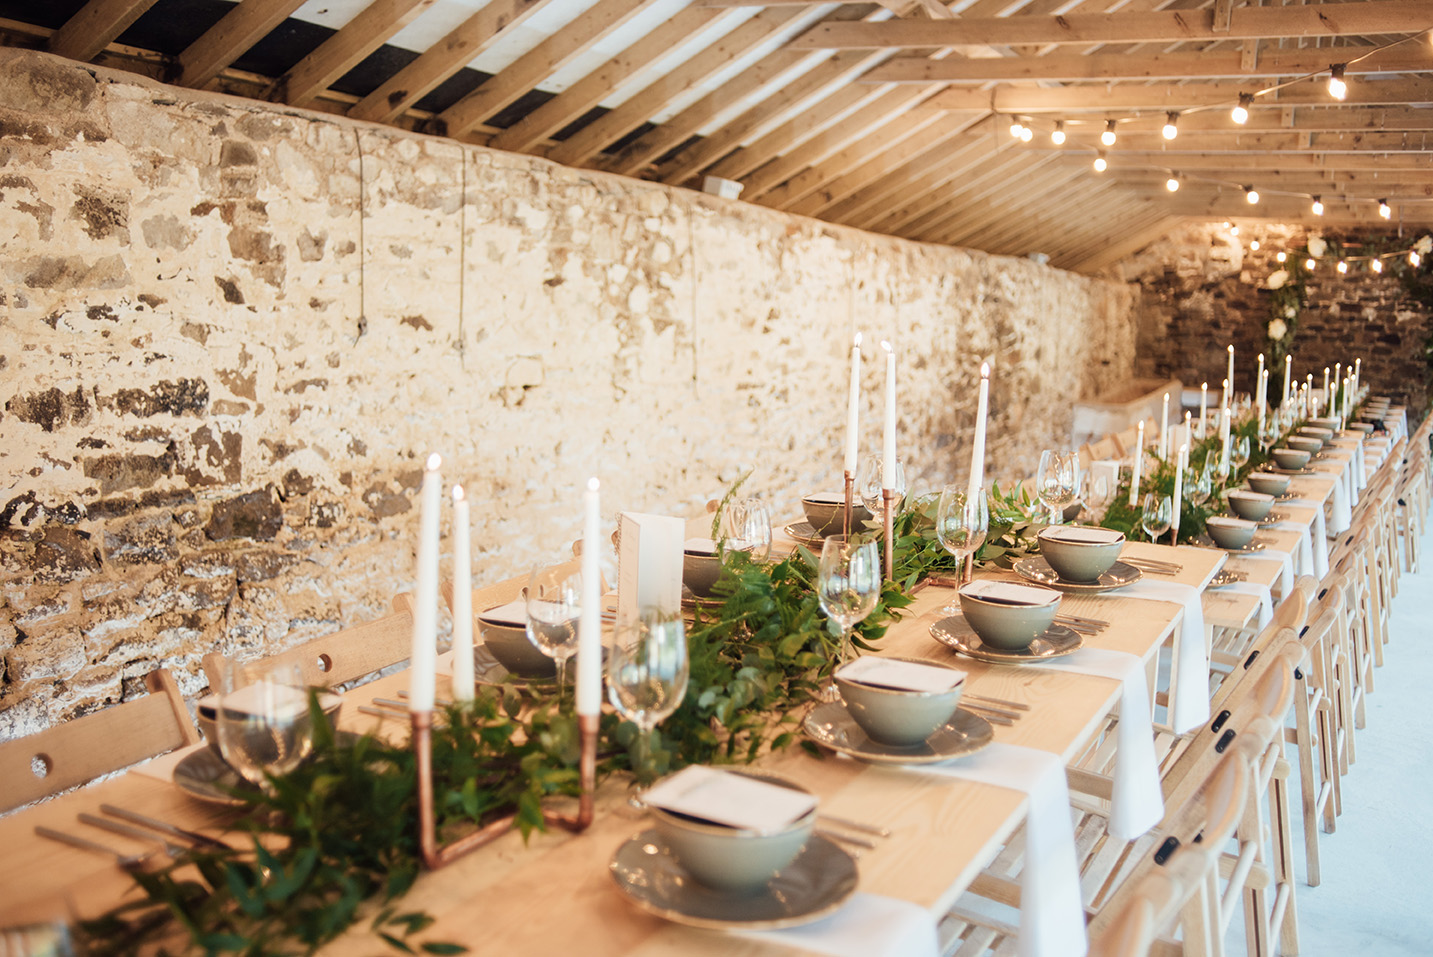 The inside of the Cowyard Barn rustic party and reception space set for an evening dinner at Pengenna Manor Cornwall wedding venue03.jpg